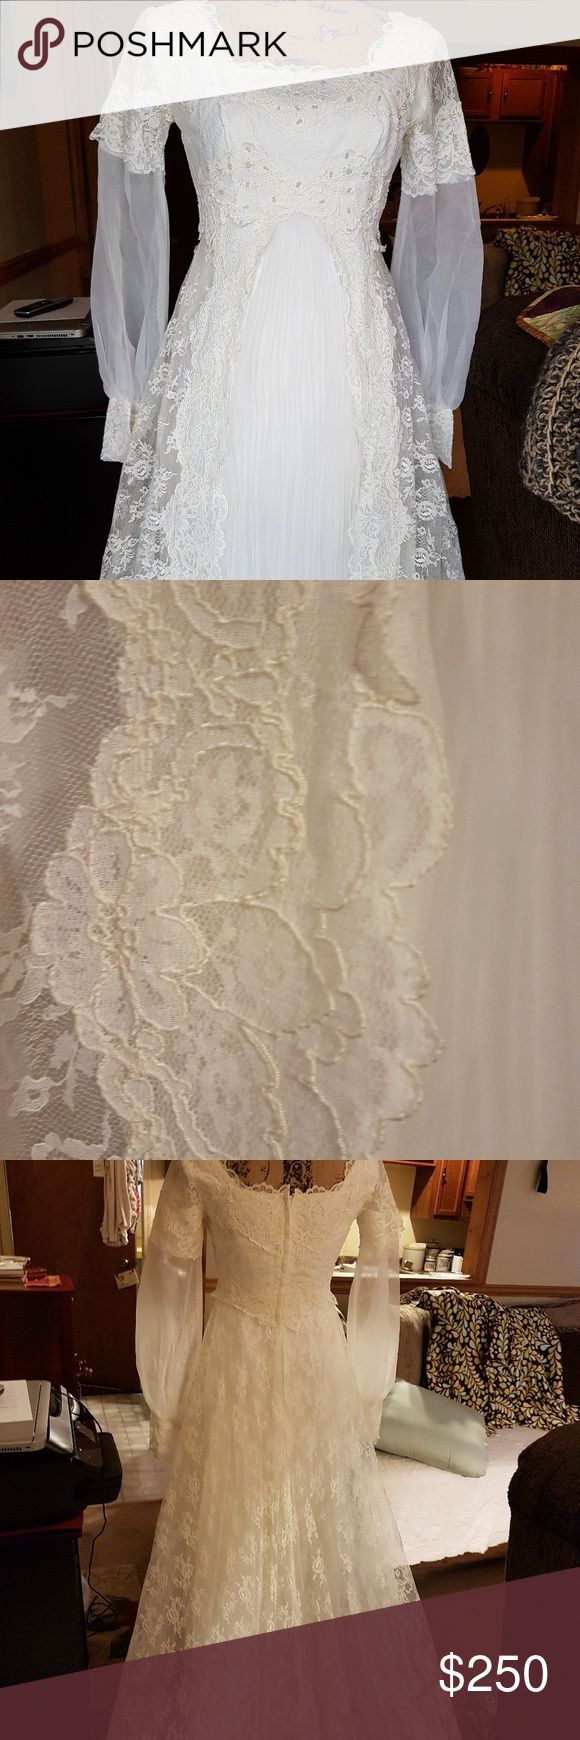 Vintage Lace Wedding Dress Circa 1970's.  EUC White Rose Lace Overlay Pleated front Tafetta and Tulle layers. Bodice has Rose Lace with seed white beading.  Sheer long sleeves with 3inch snap closure cuffs This has a 80inch Lace Train and front reaches 47.5 inches to end of pleats. All measured from bodice/waist. Size 6 to 8 Tall now. Has been Cleaned and Stored properly.  This Snowwhite Dress elicits a soft romantic note of chastity.  The Lace denotes Vintage.  Exquisite gown!!  I had to…